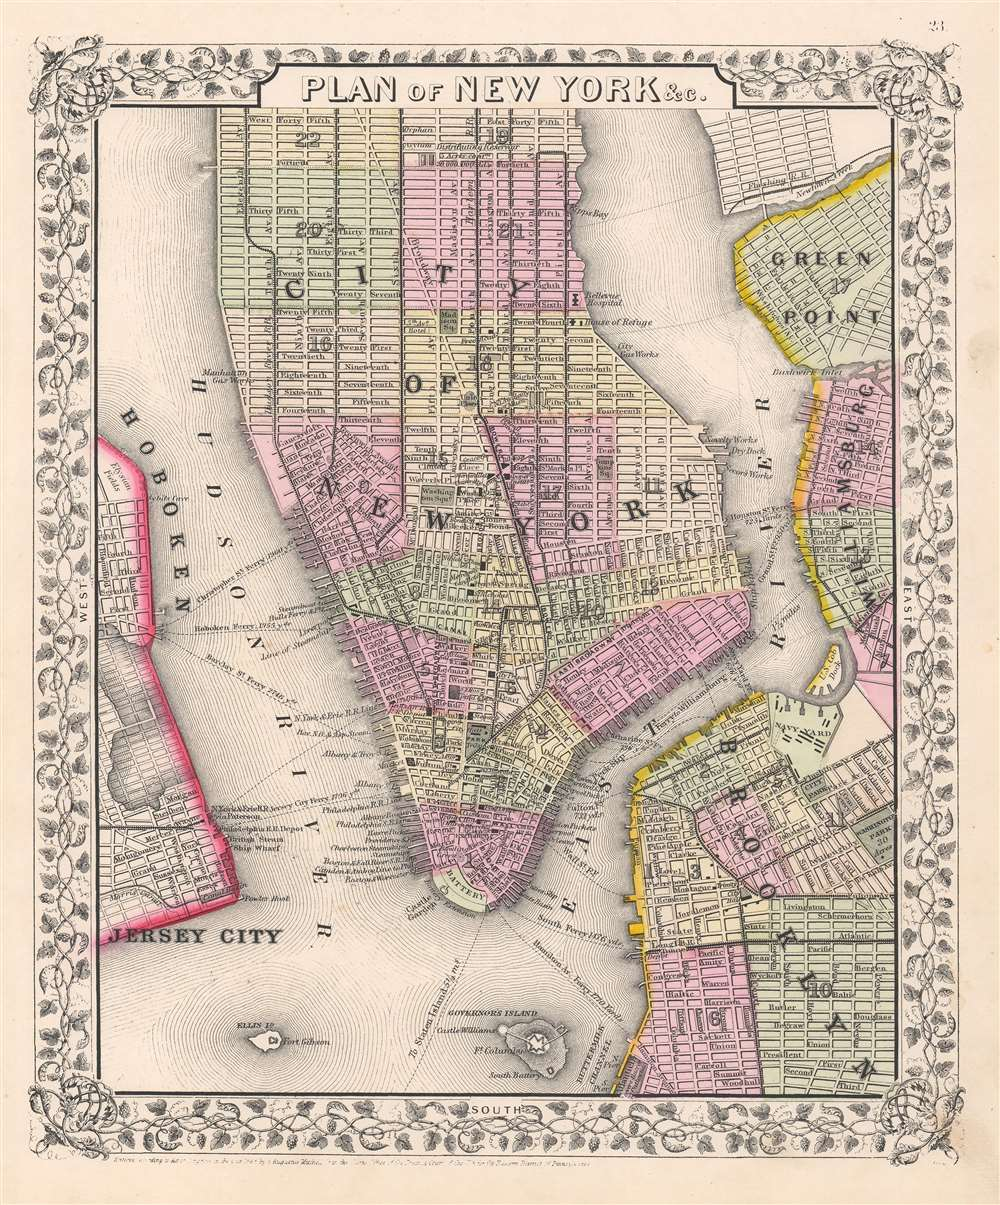 1866 Mitchell City Plan or Map of New York City, New York